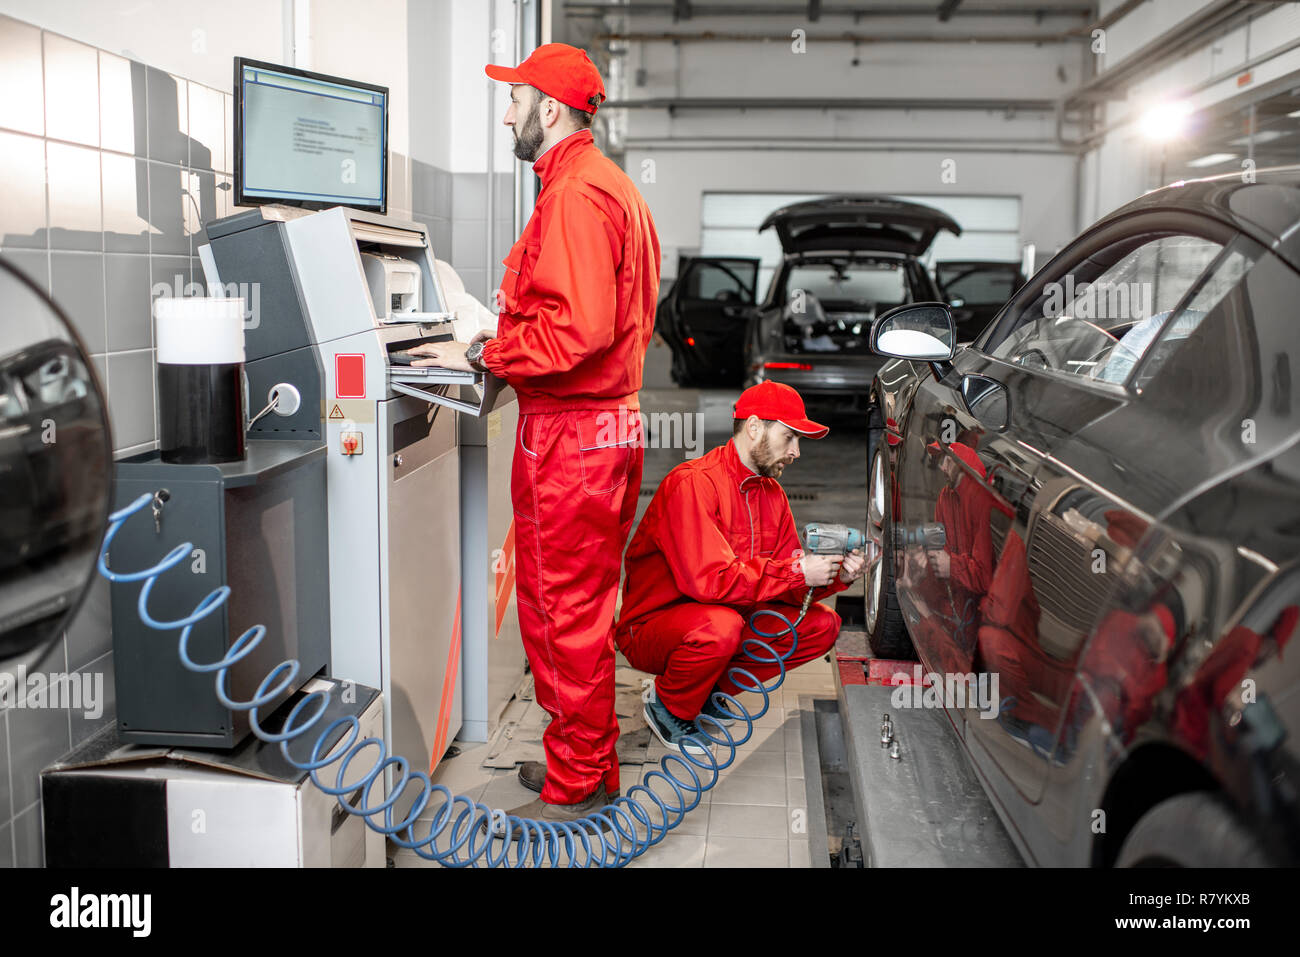 Car Service Workers In Red Uniform Balancing And Changing Wheels Of